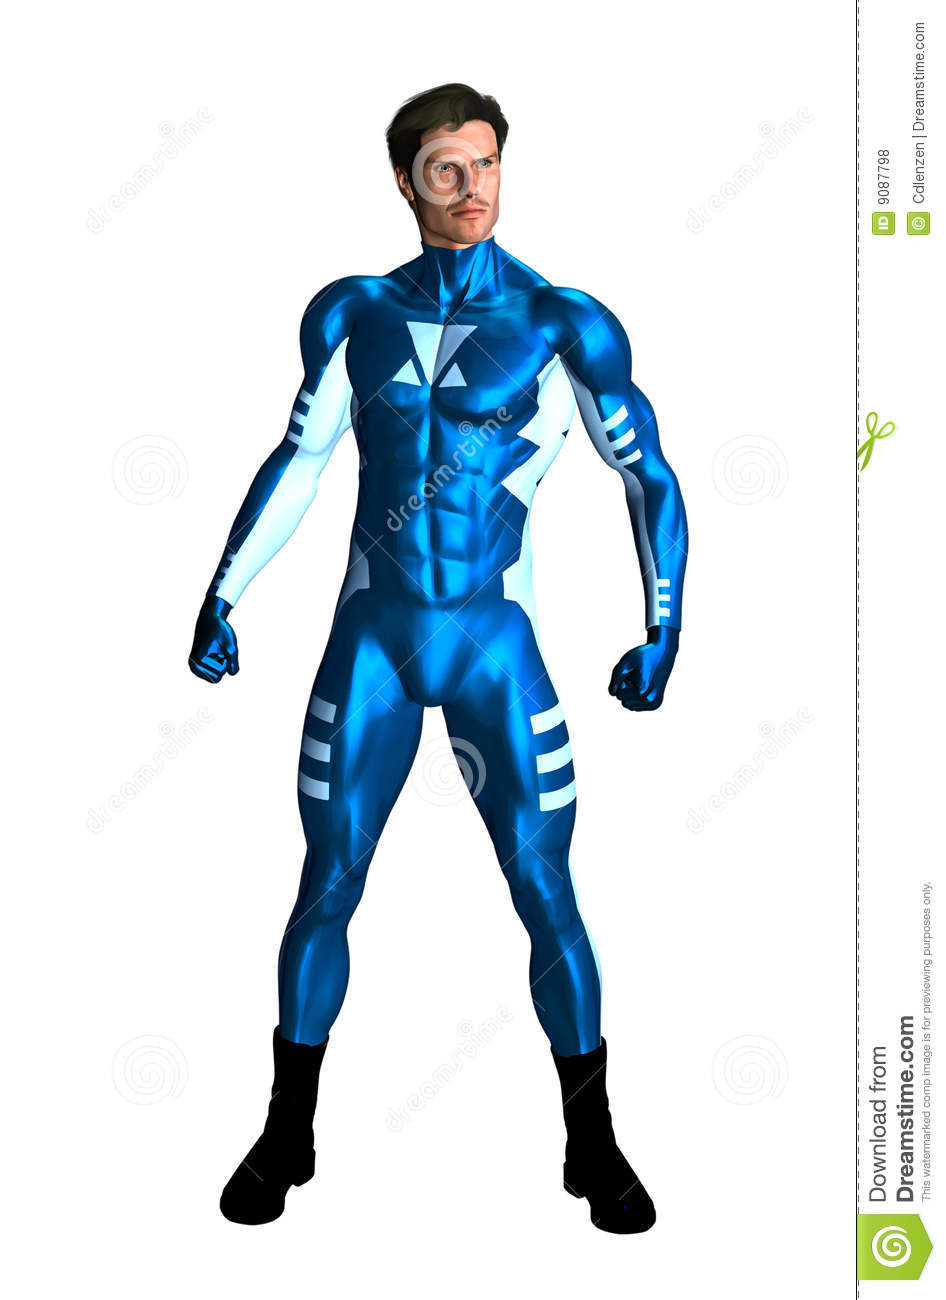 Male Superhero Flying Royalty Free Stock Photos  Image: 9087798